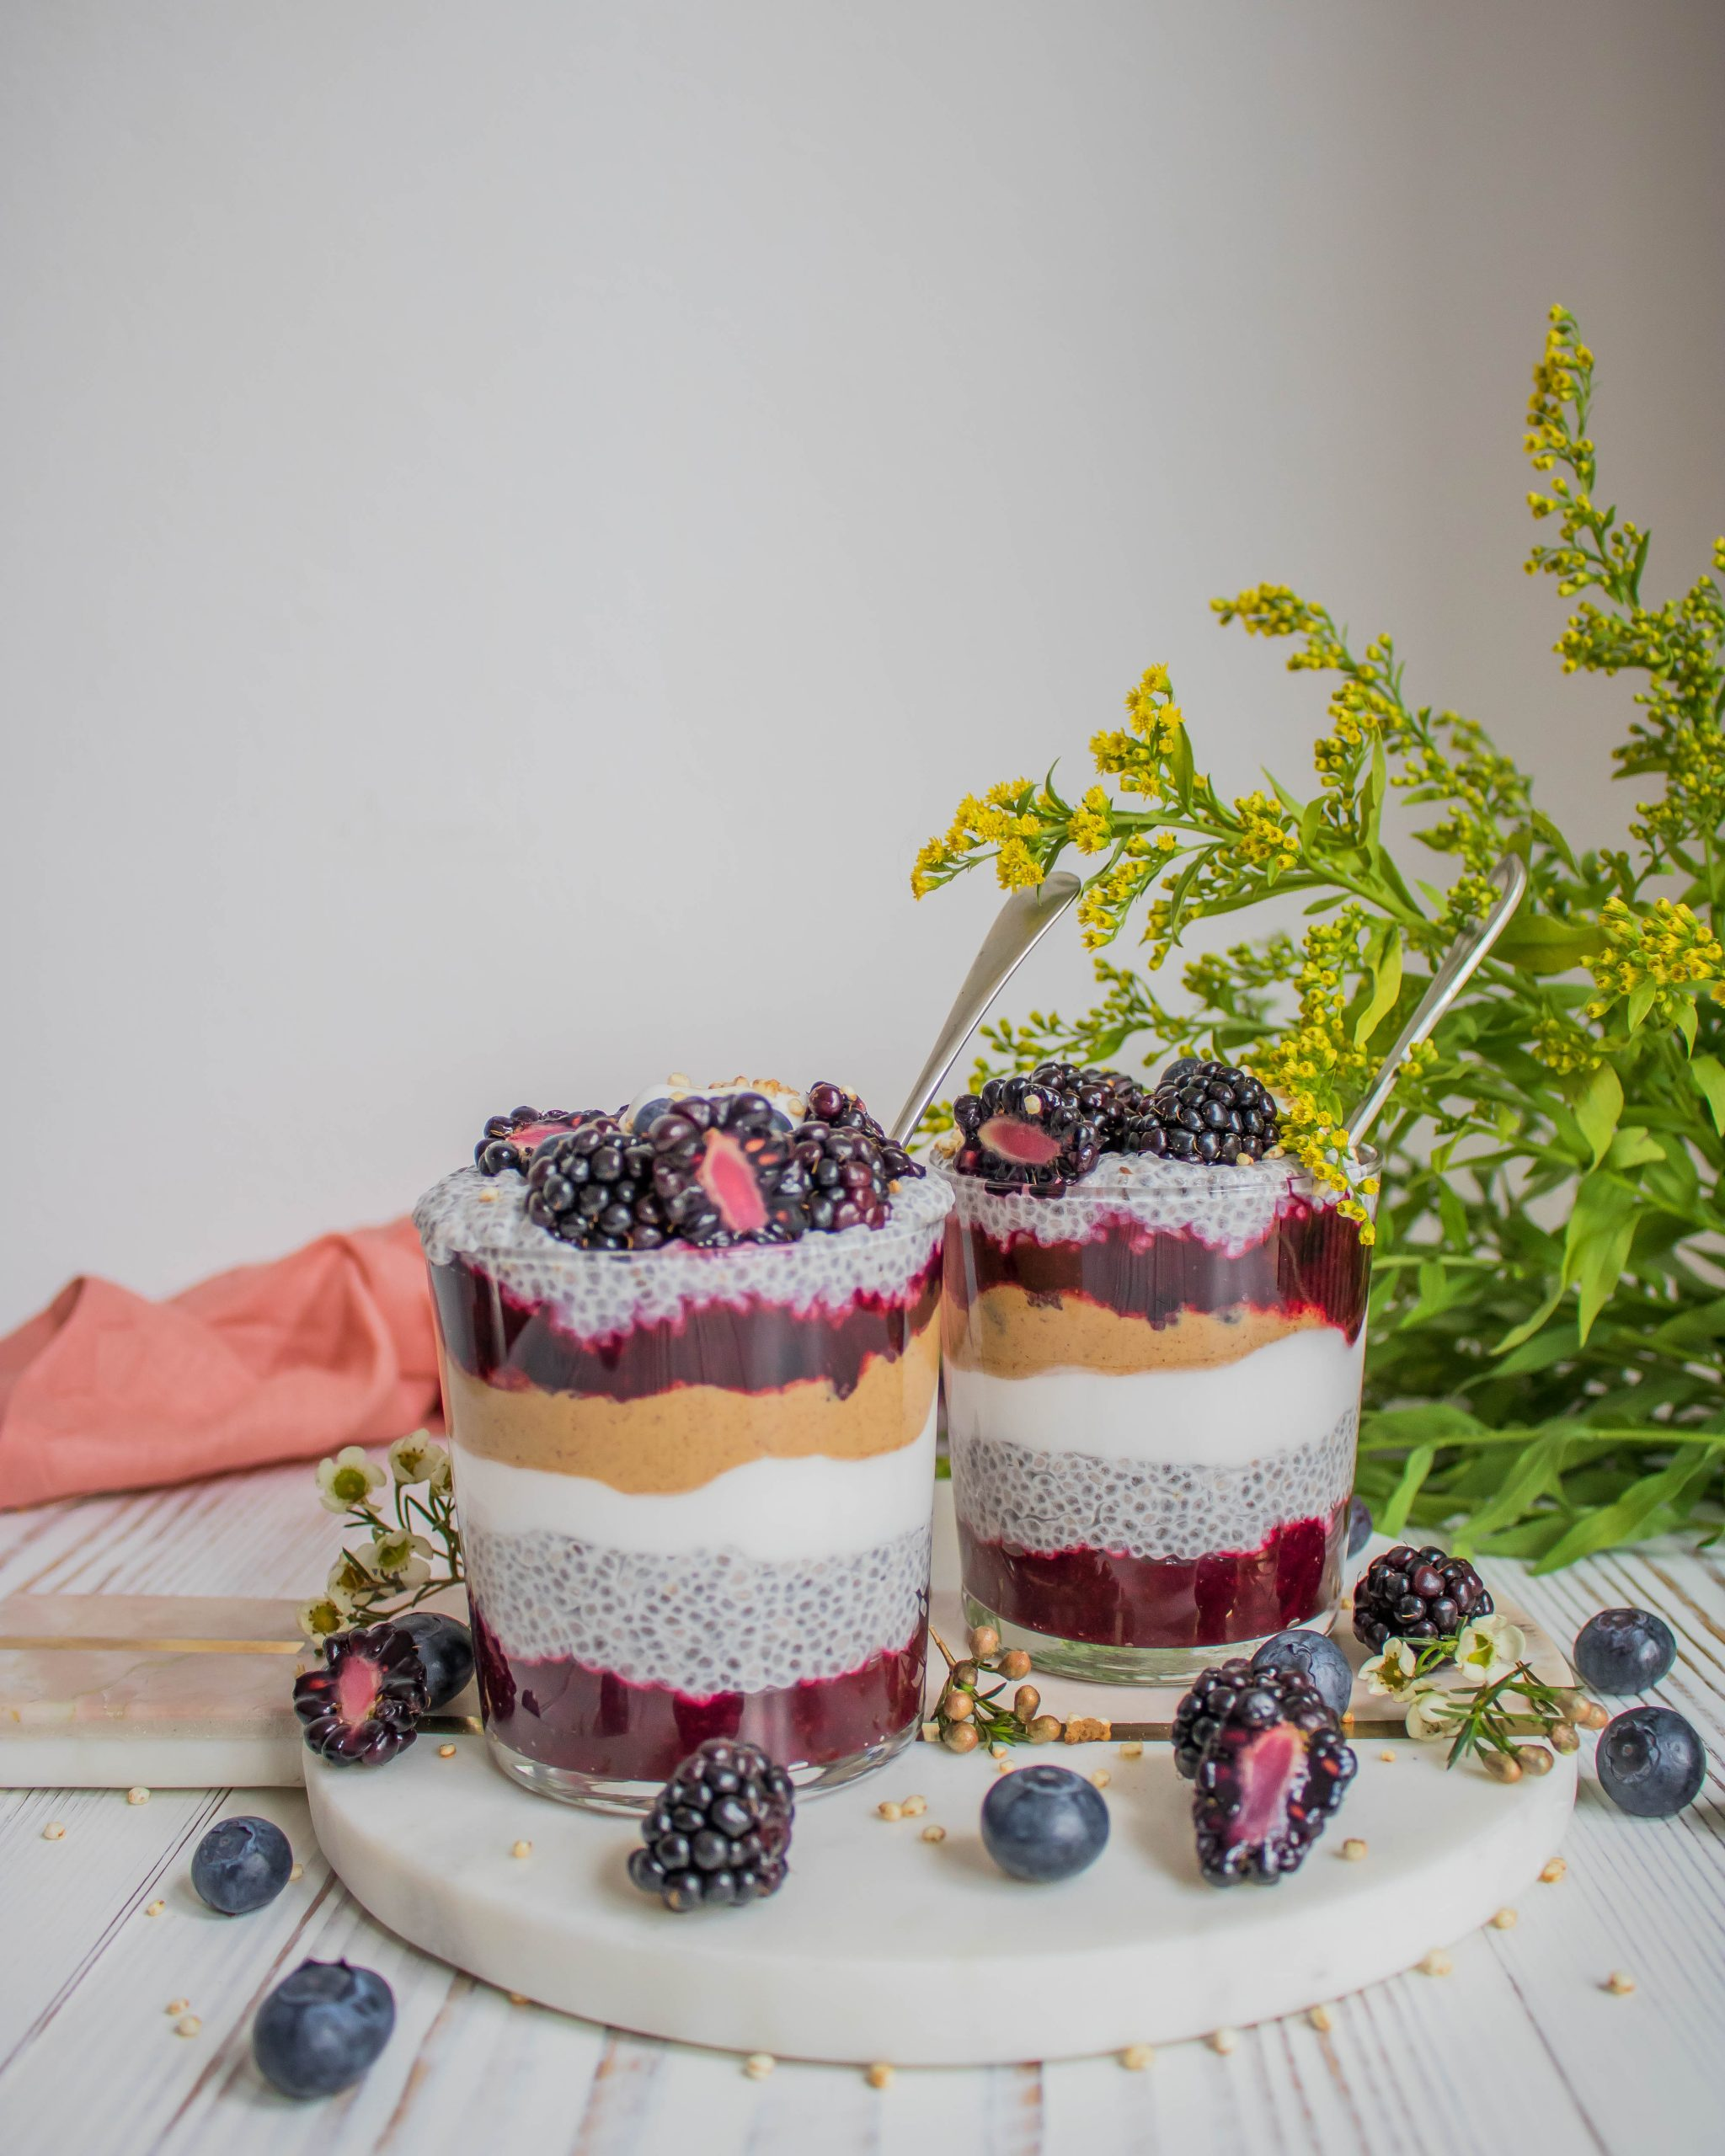 Peanut Butter & Jelly Chia Pudding Parfaits